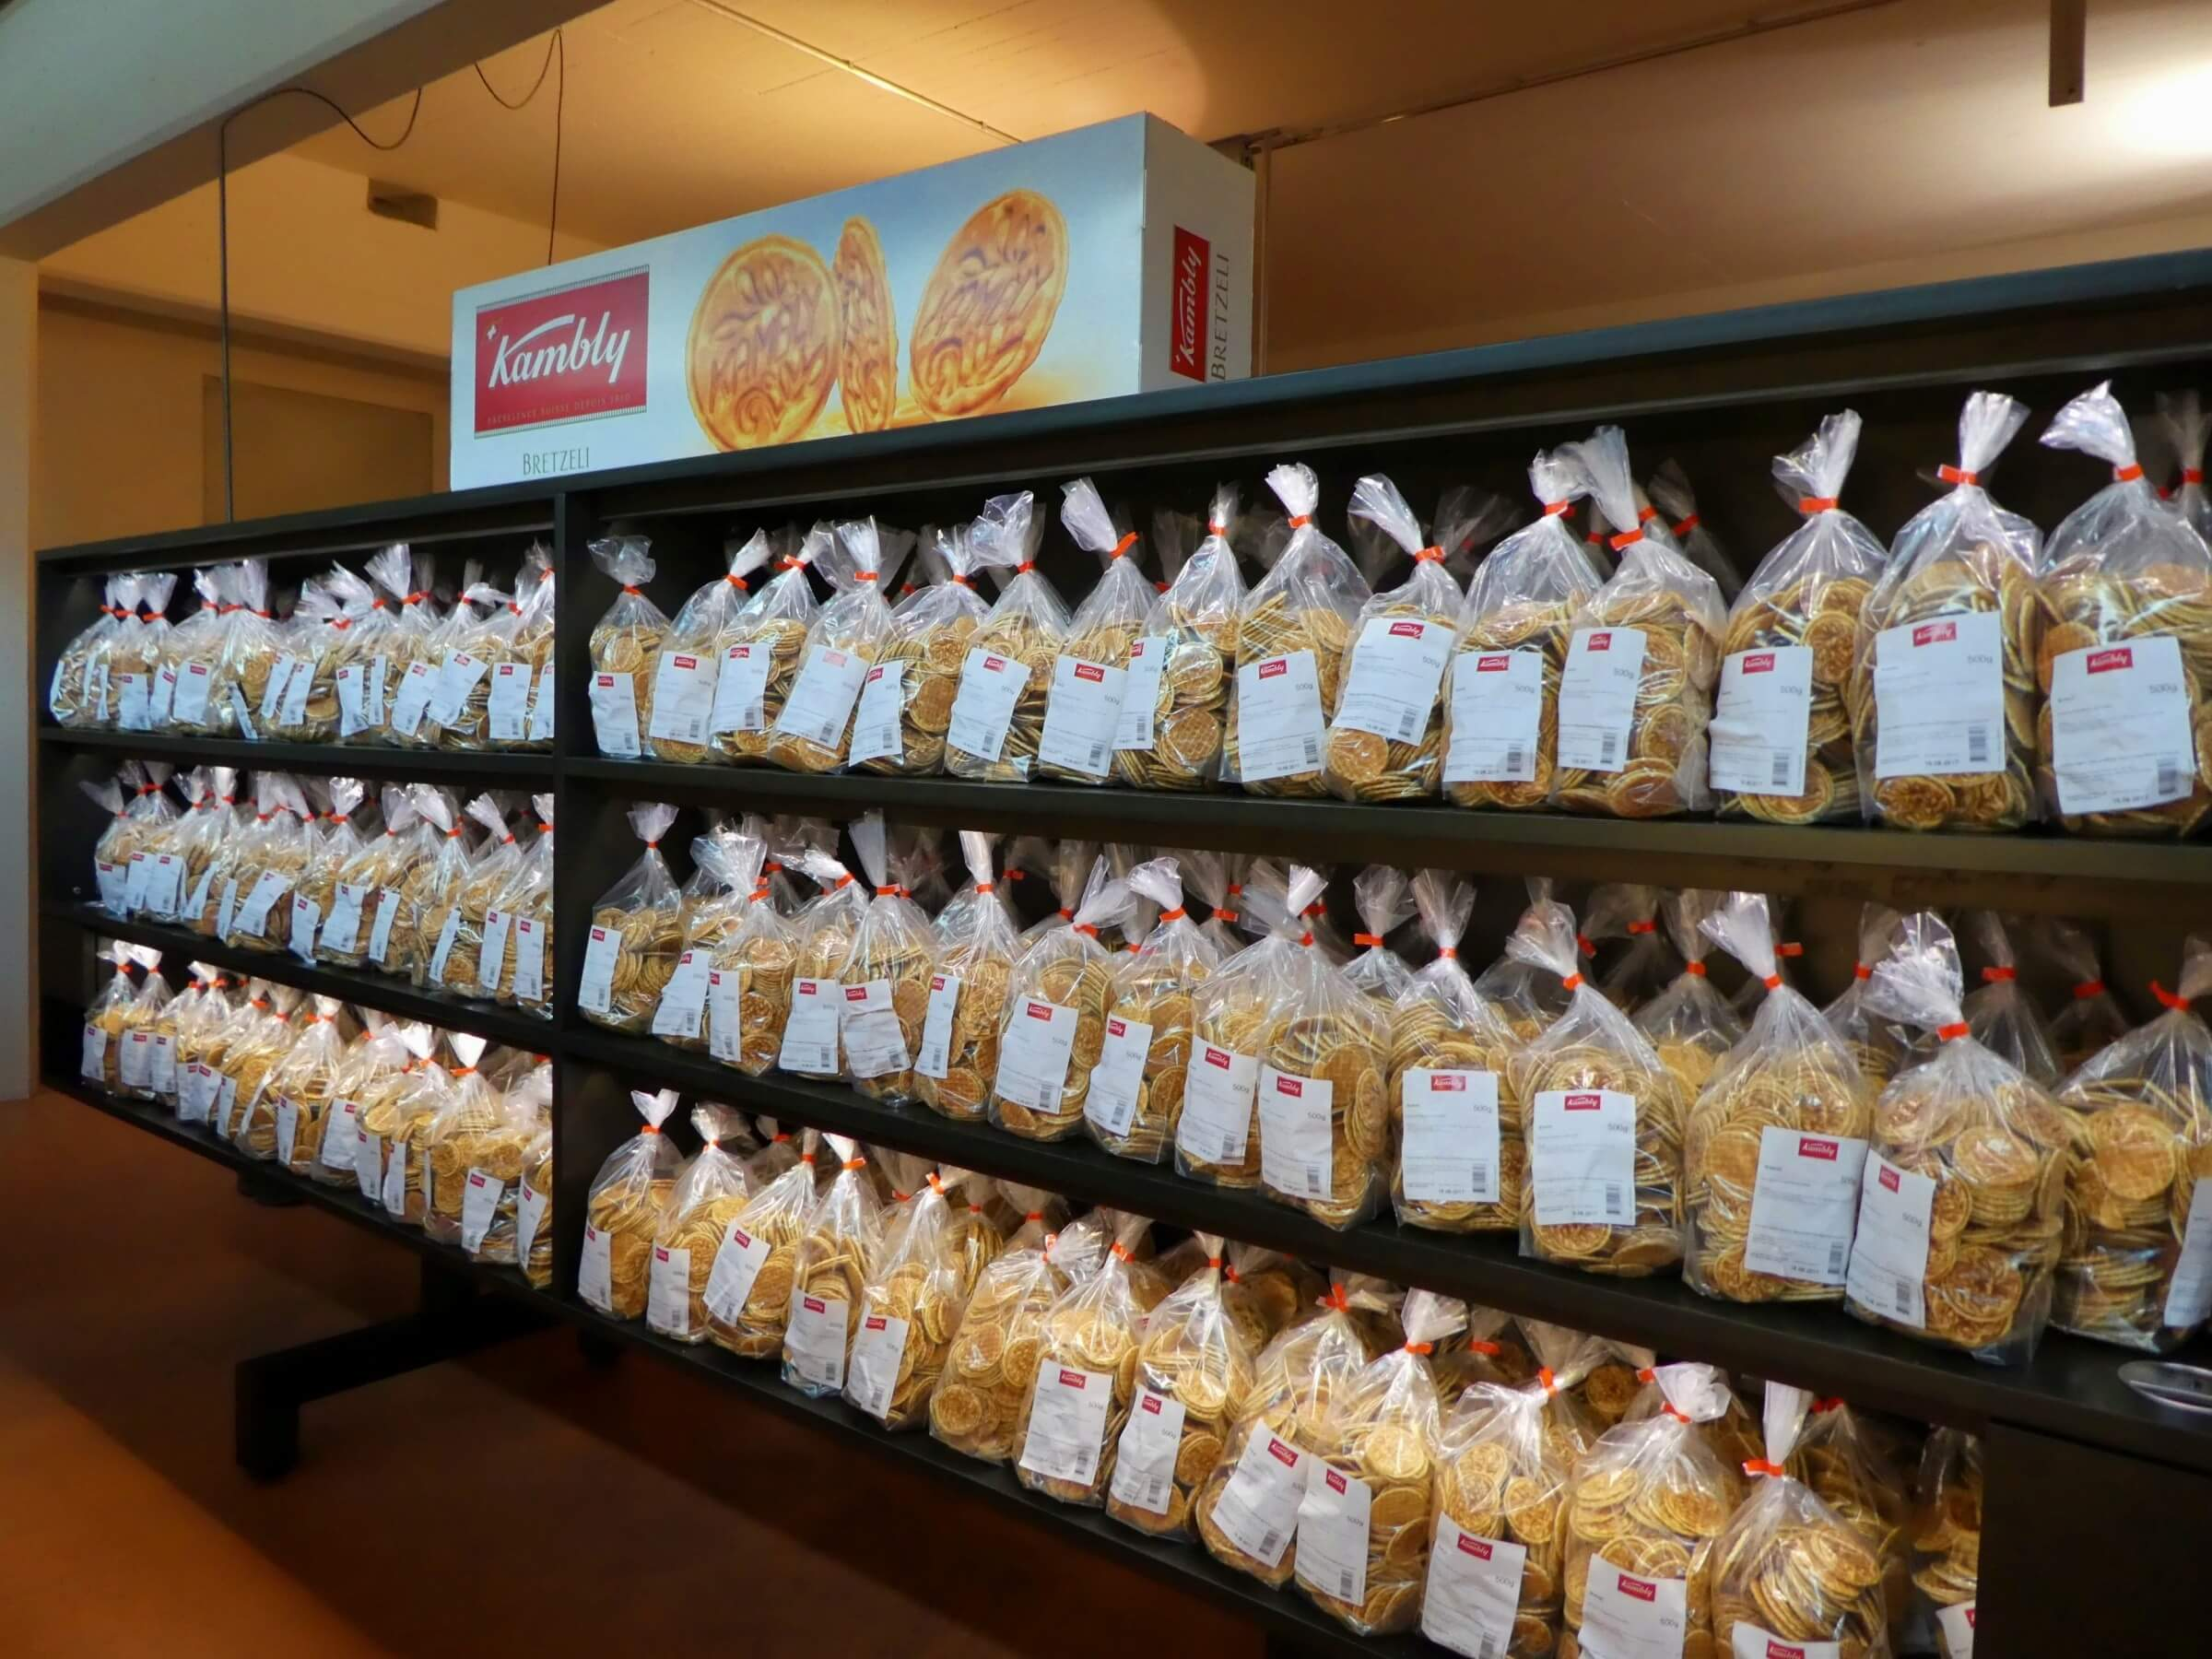 The Bretzeli has been Kambly's market leader for over a century.